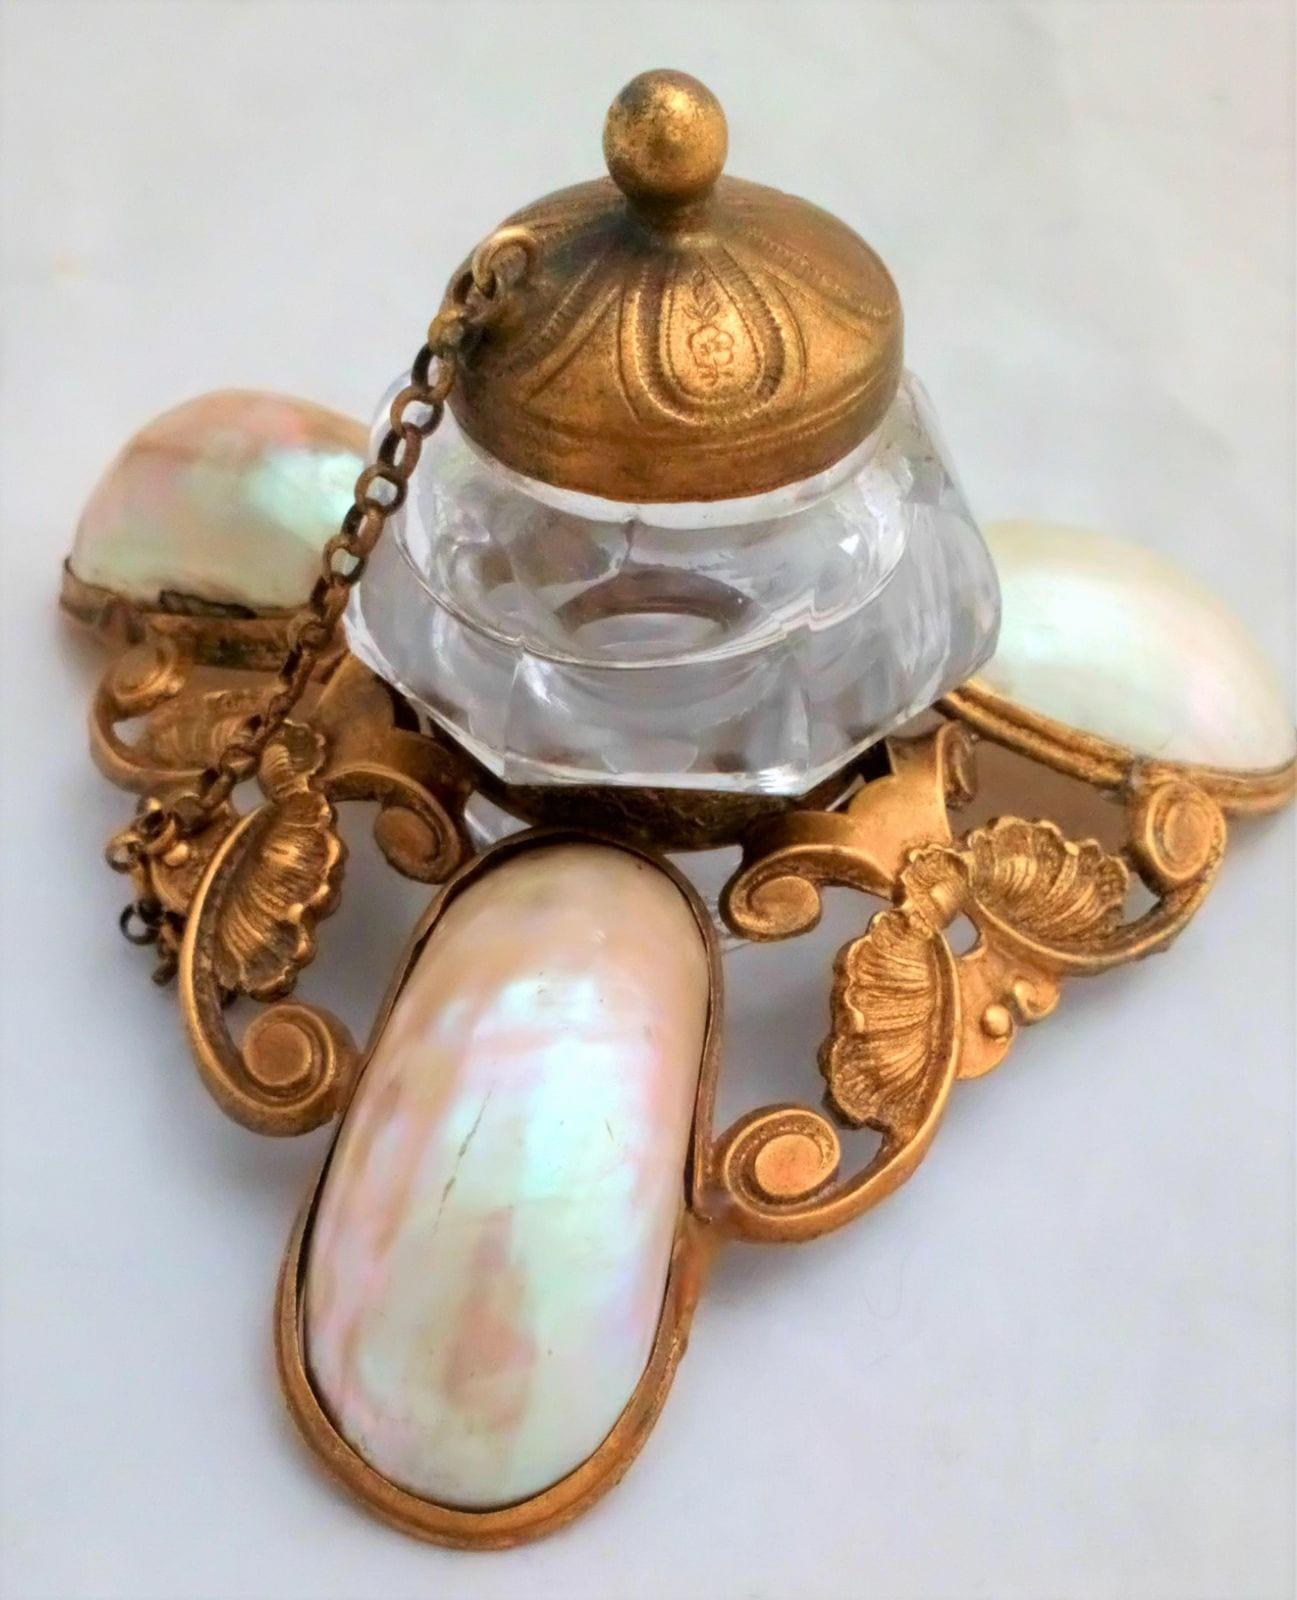 Antique French Palais Royal of Paris Mother of Pearl Shell and Ormolu stand with a Glass Ink well Grand Tour memento circa 1880